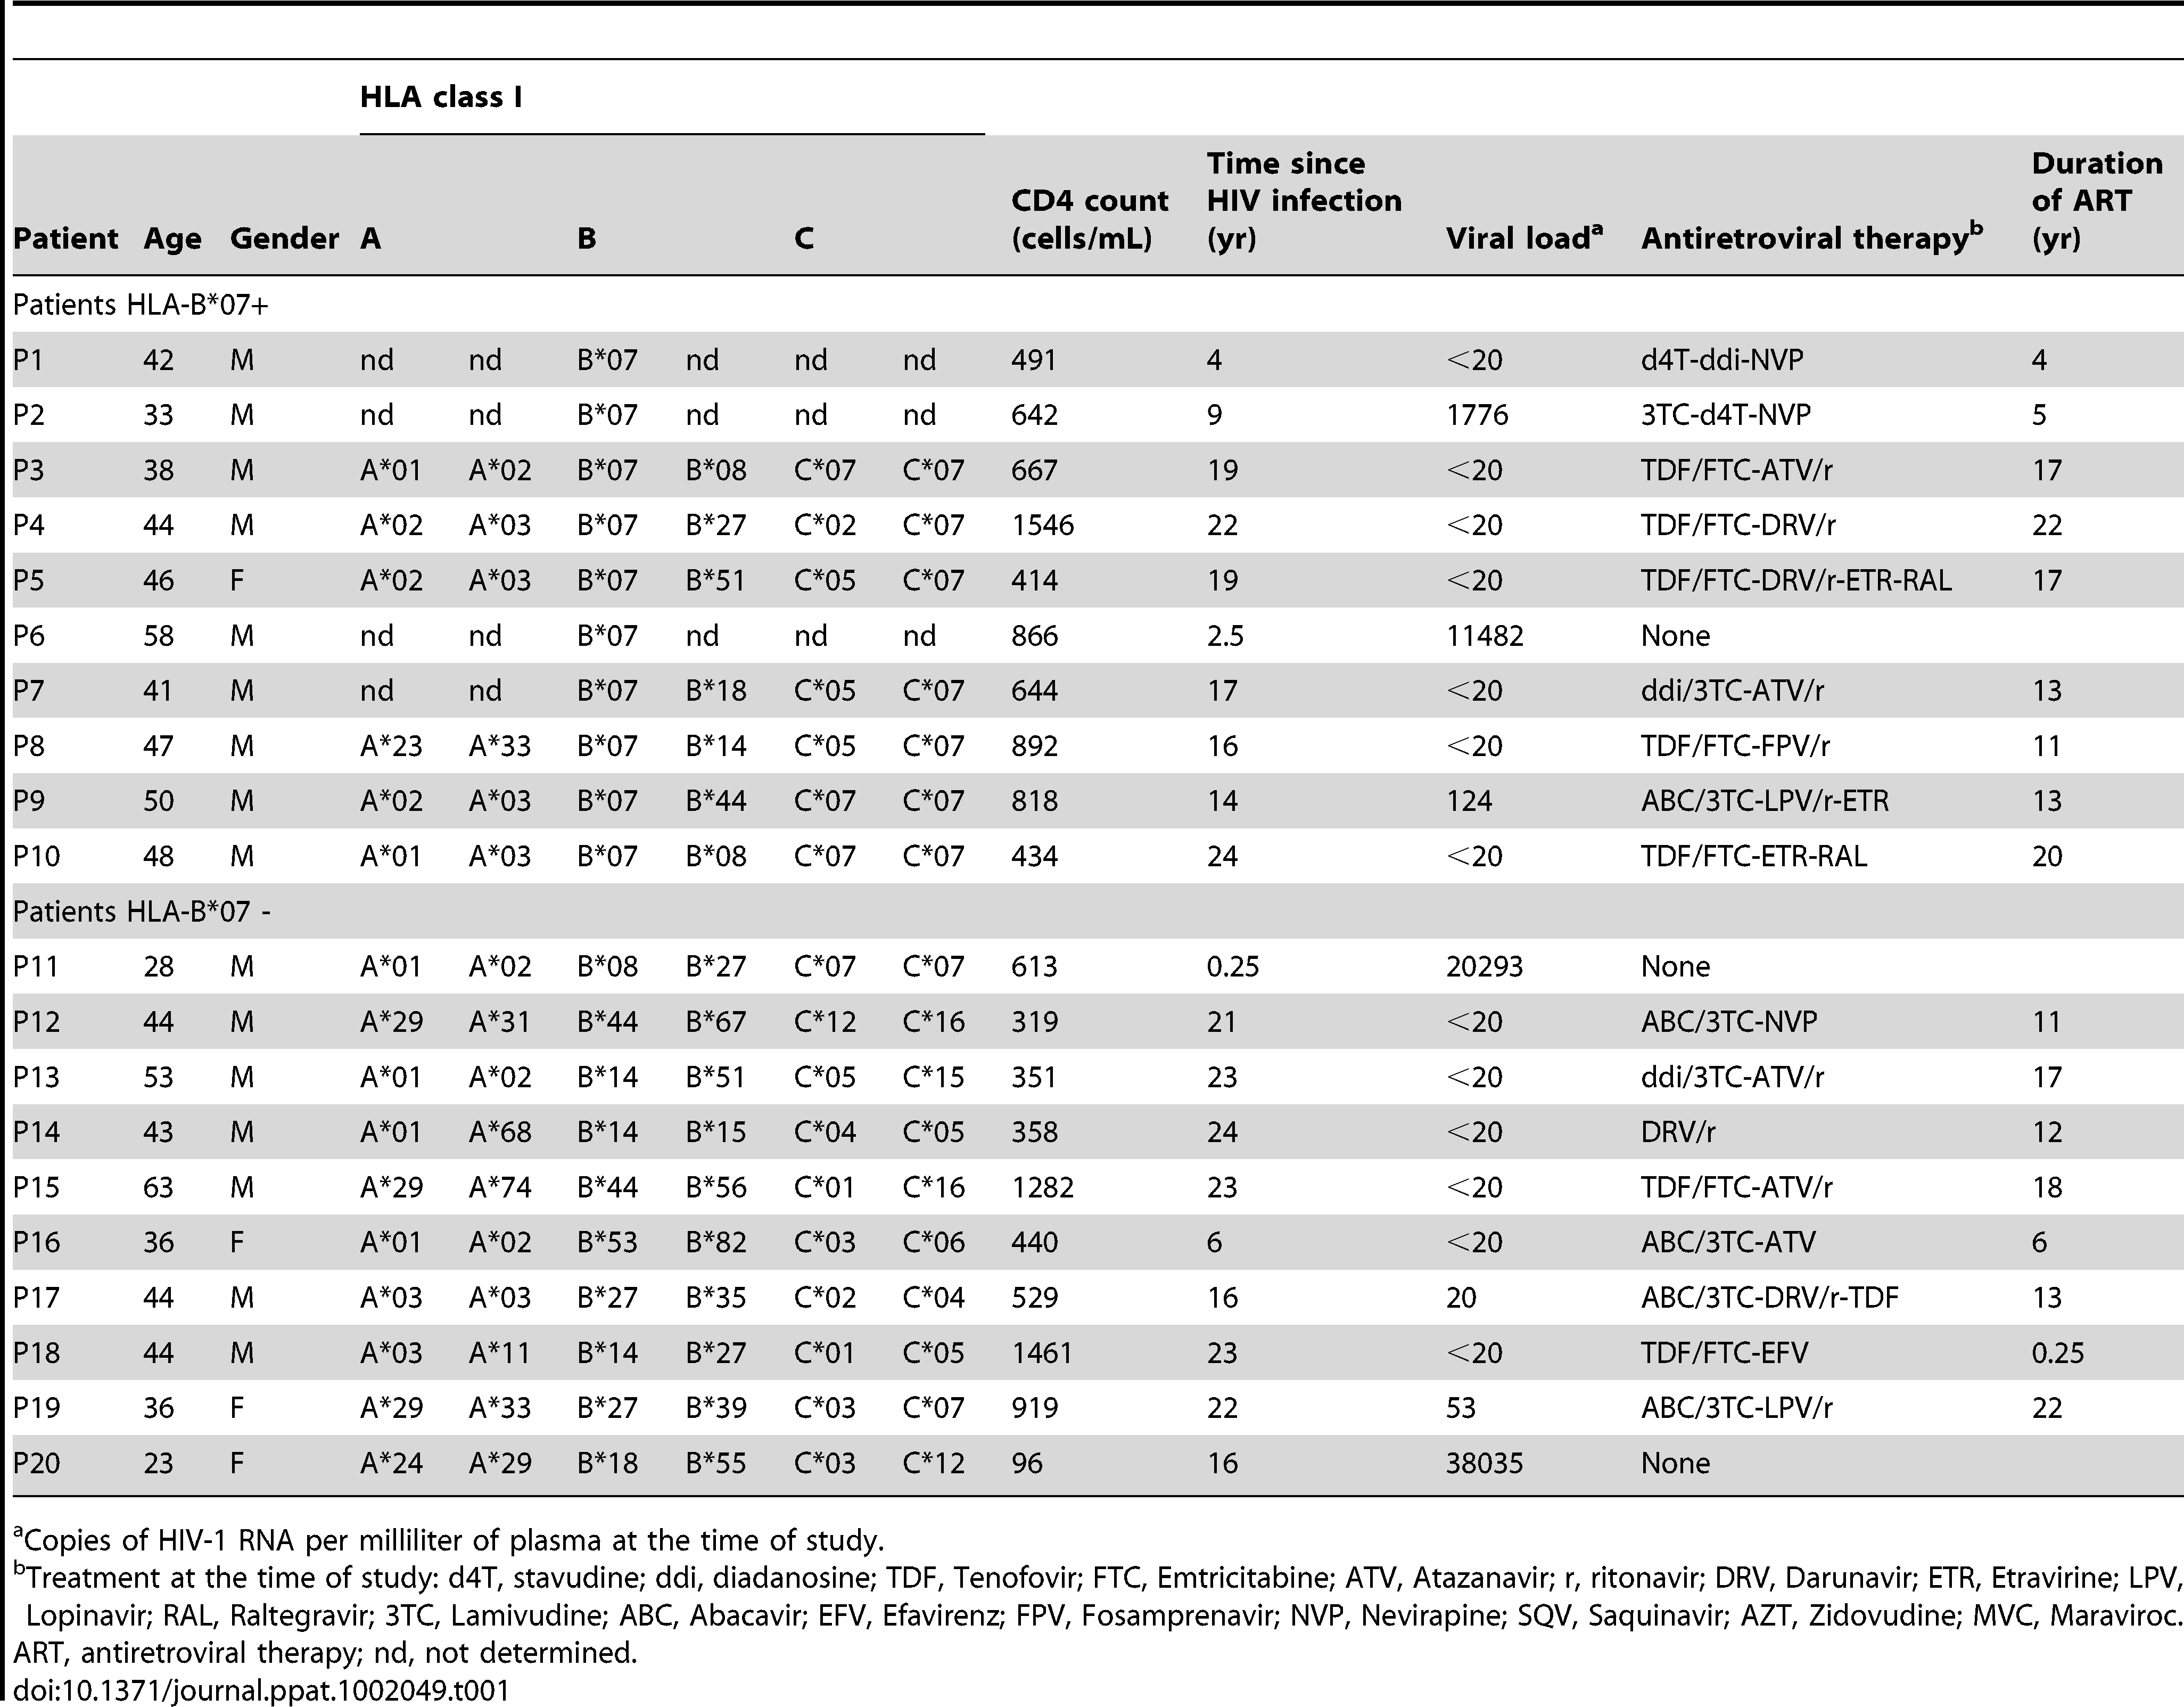 List of patients used in this study.